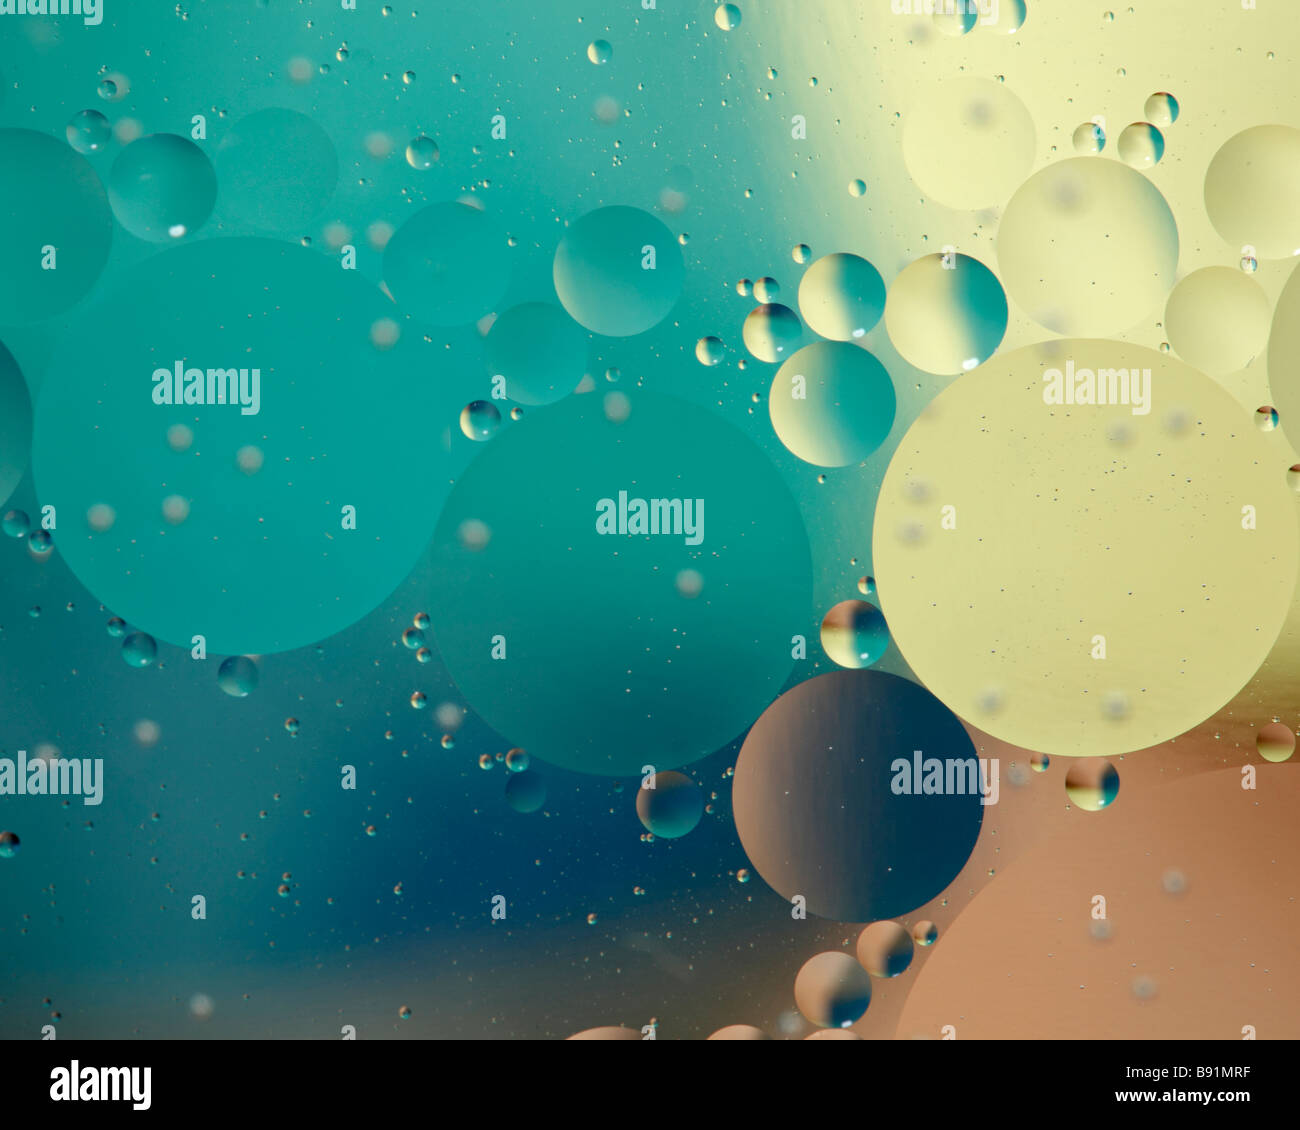 Abstract floating bubbles - Stock Image